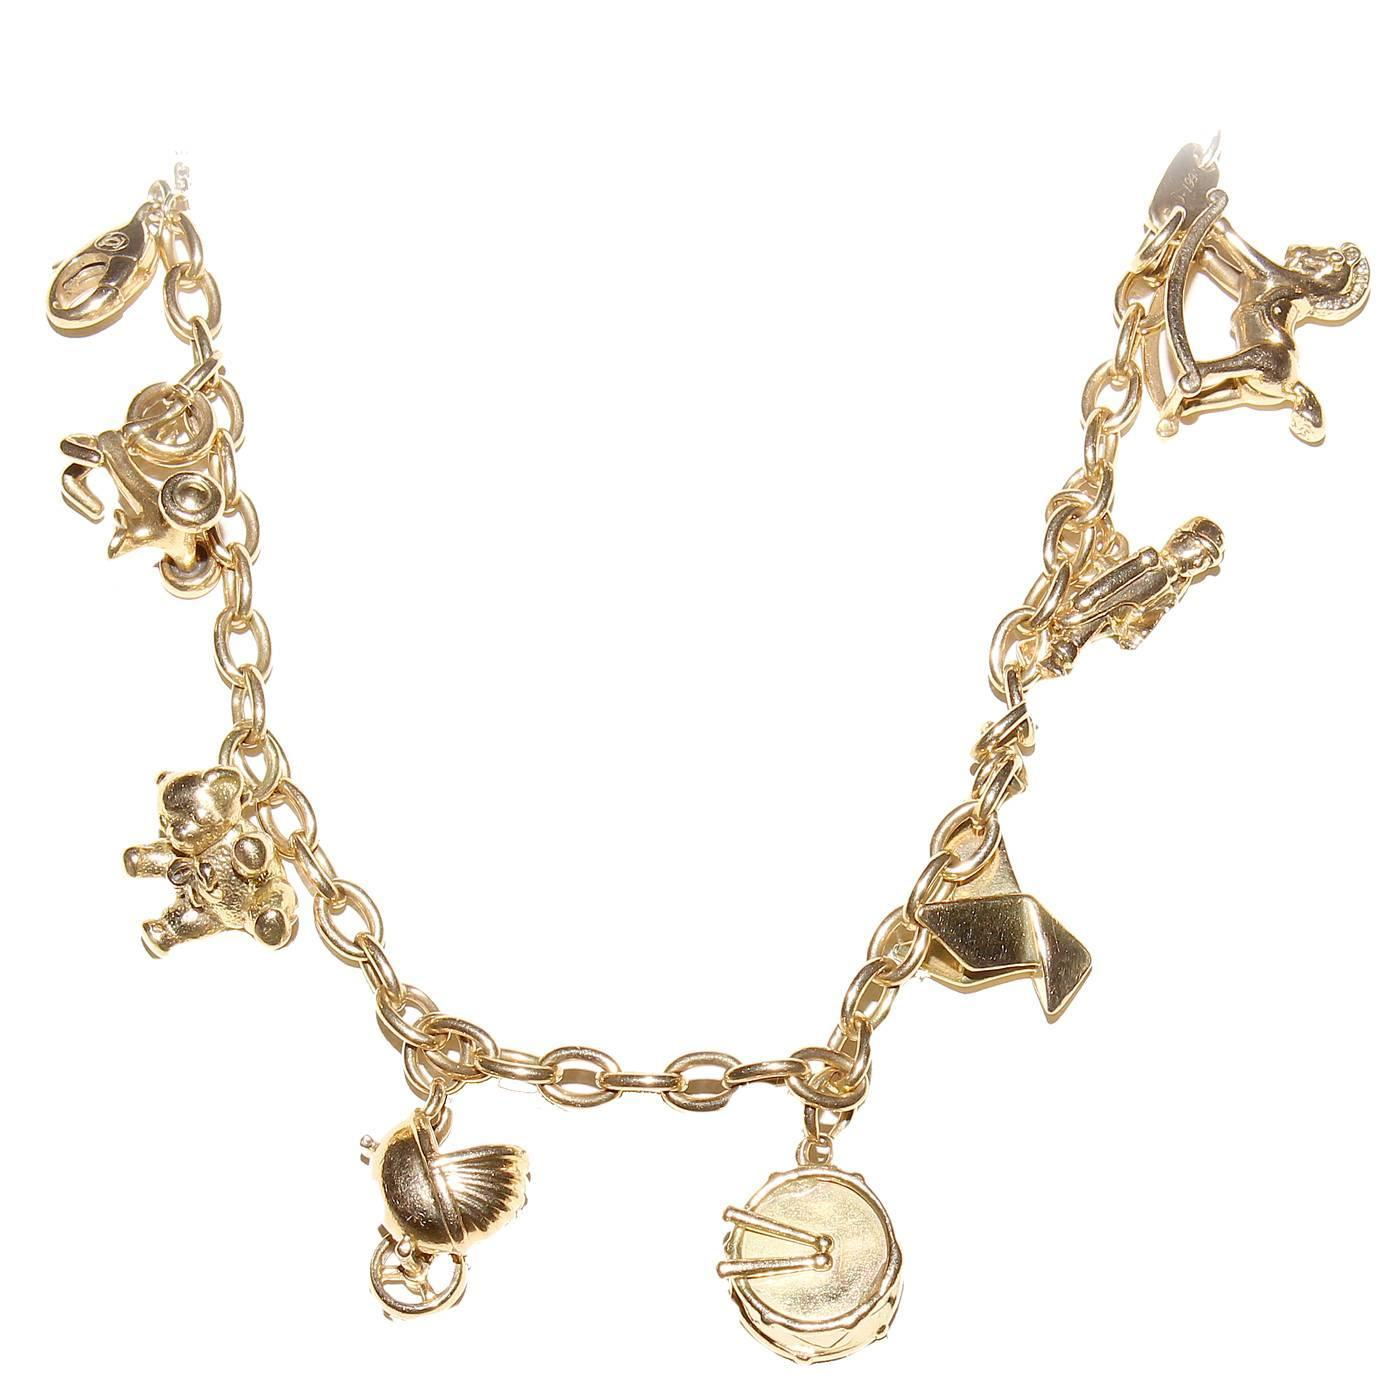 Cartier Gold Charm Bracelet at 1stdibs